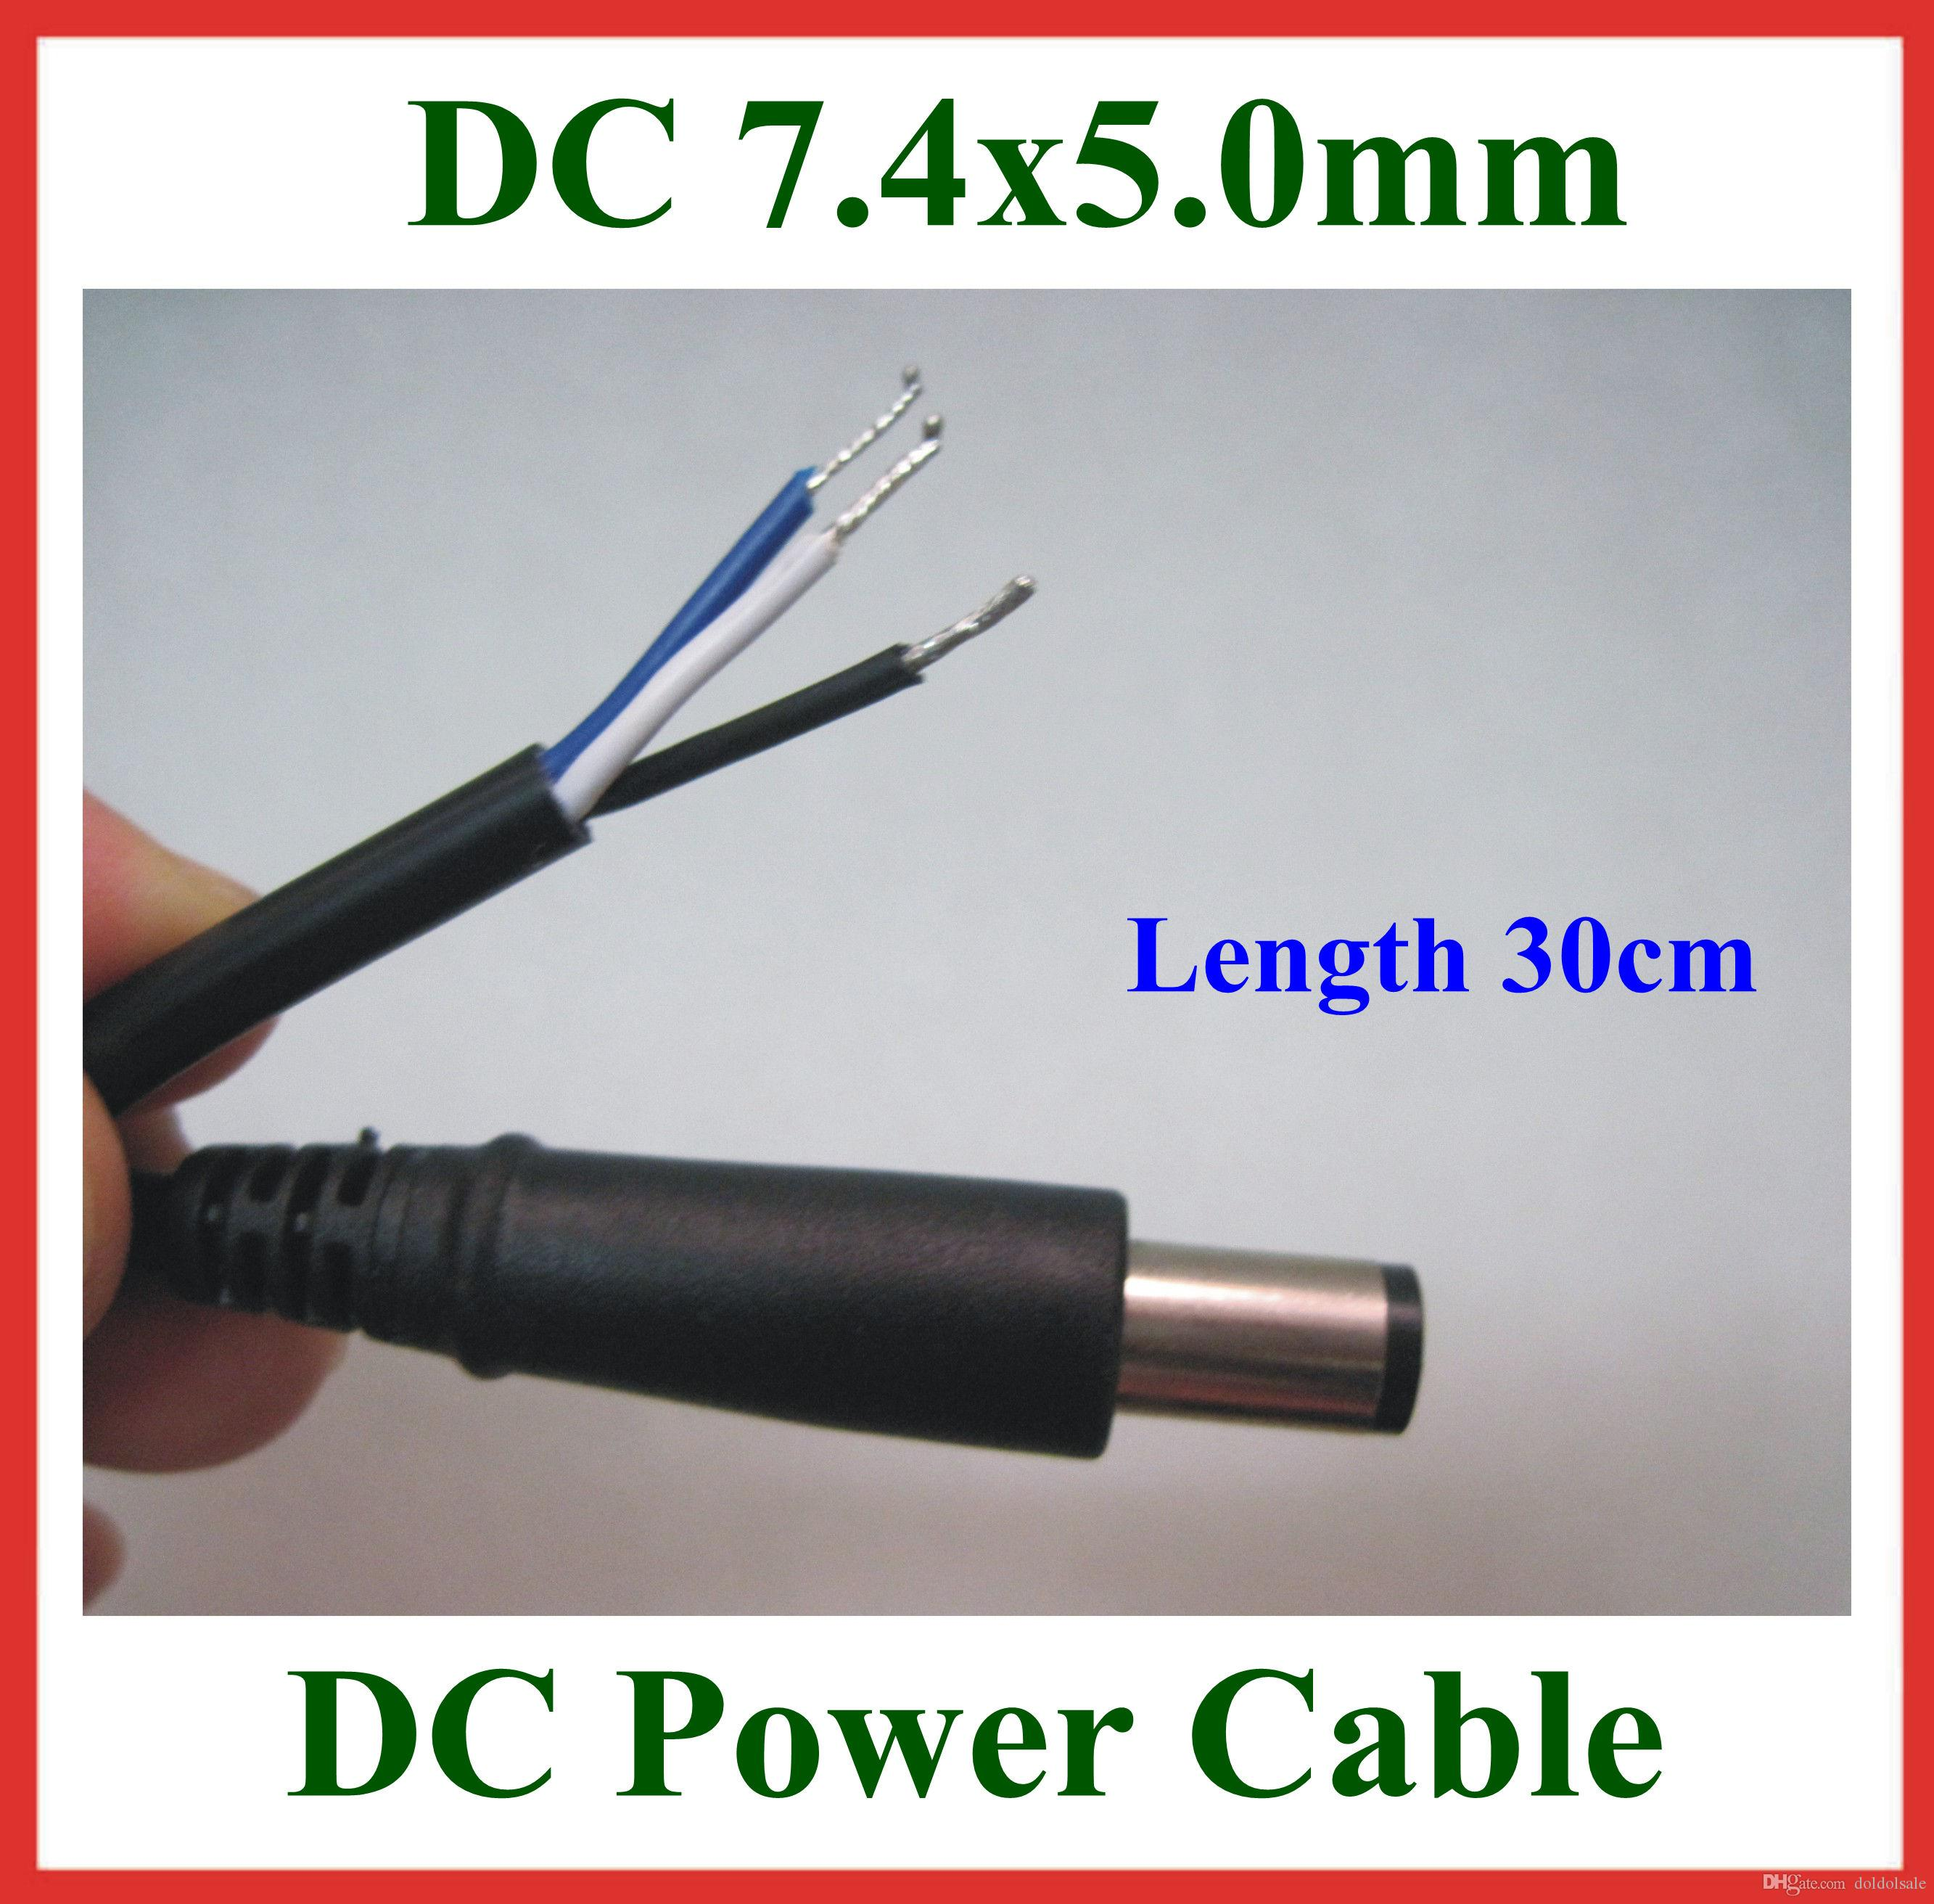 2pcs dc tip plug 7 4 5 0mm 7 4x5 0mm dc power dc tip plug 7 4*5 0mm 7 4x5 0mm dc power supply cable with pin wiring diagram for hp laptop charger at fashall.co